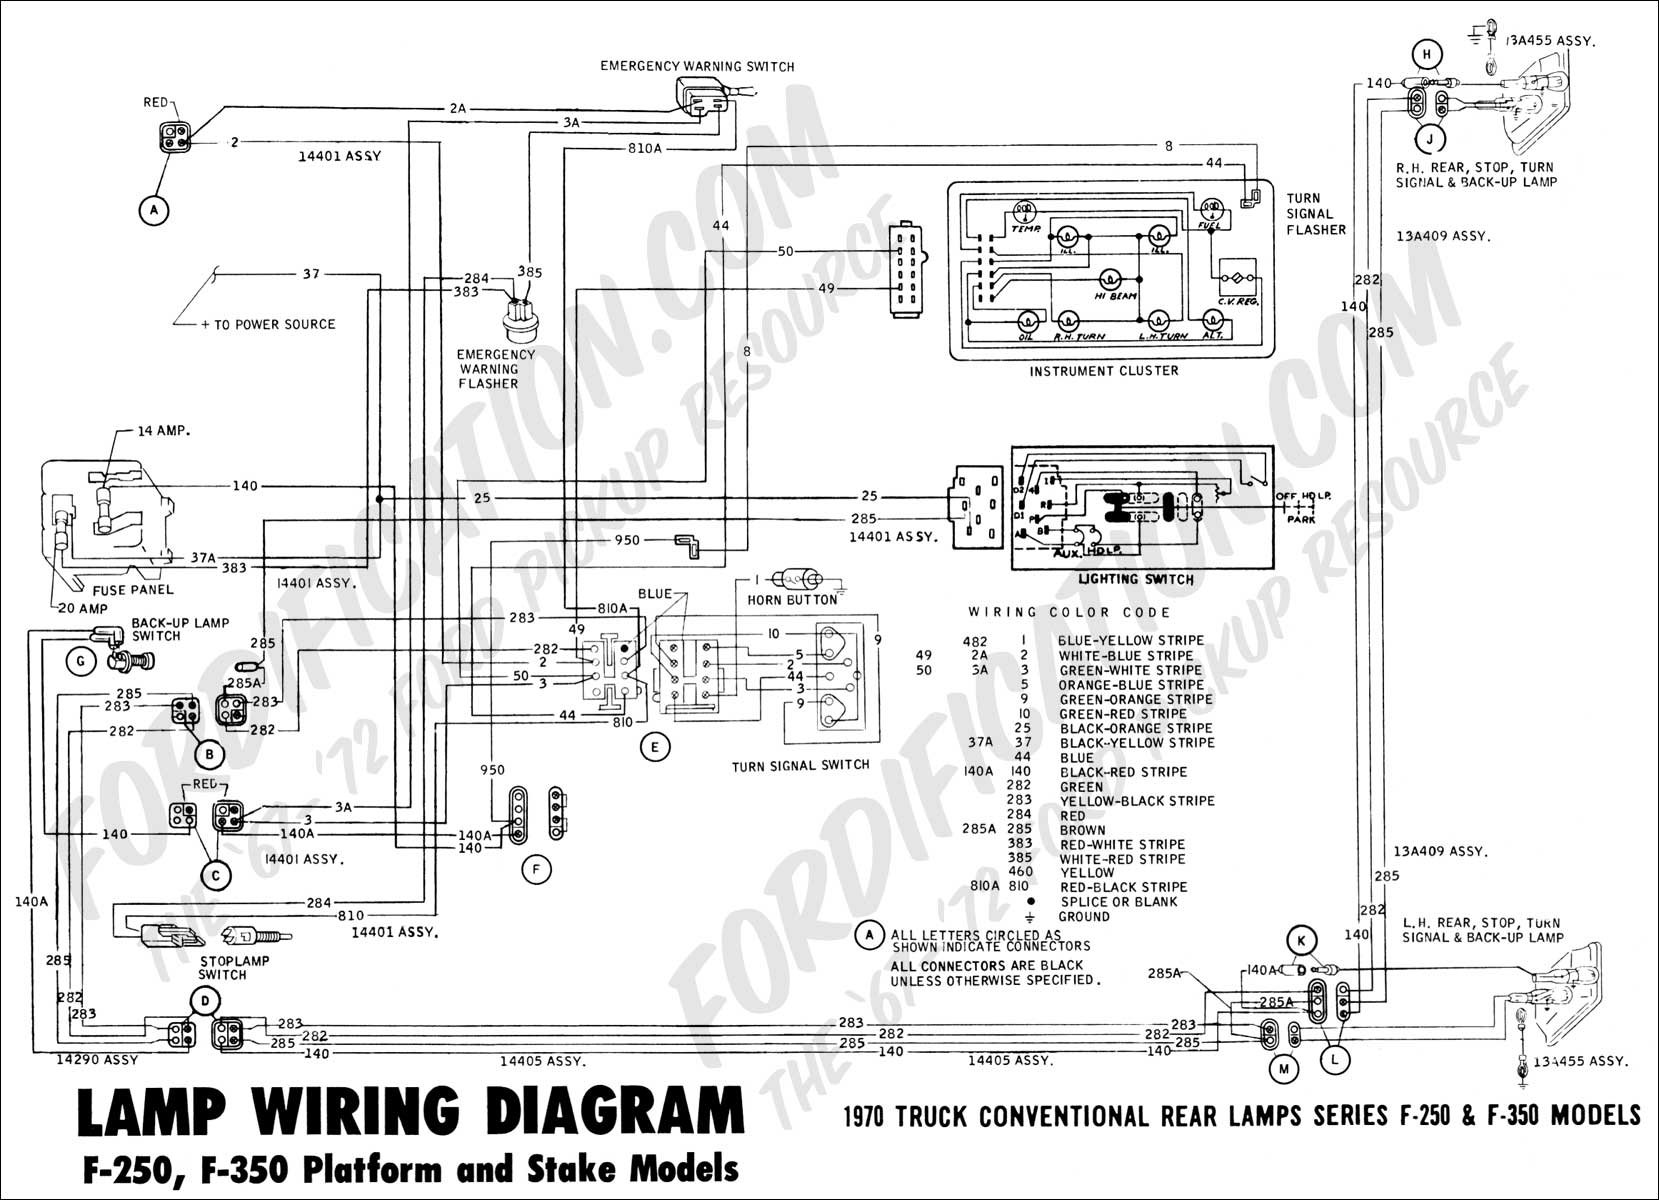 2004 F350 Trailer Light Wiring Diagram 2005 F 350 Just Another Blog Ford Truck Electrical Diagrams Library Rh 41 Akszer Eu Tail